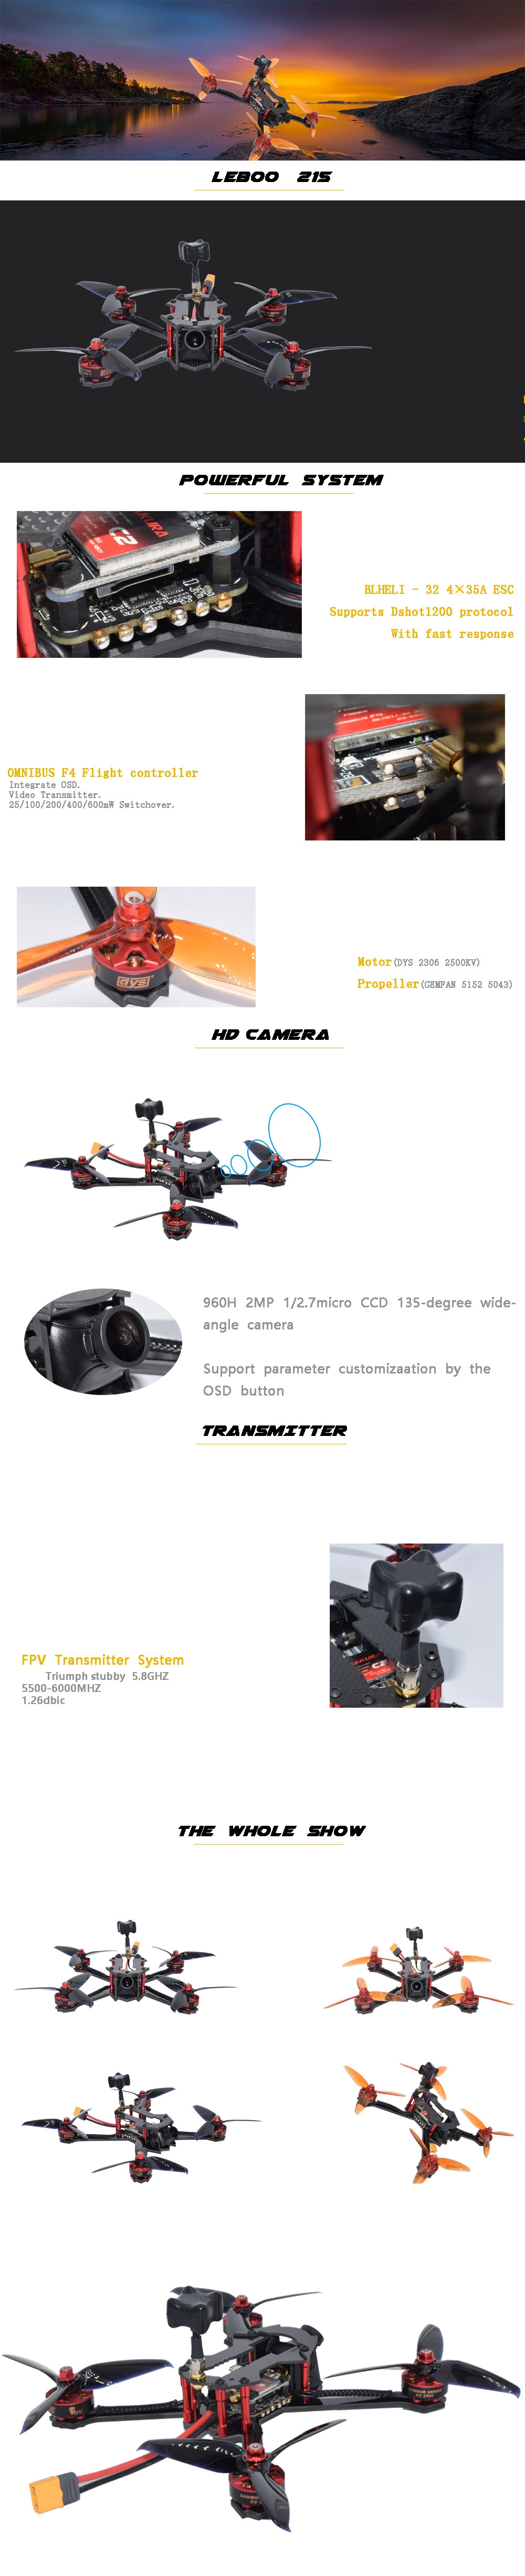 AuroraRC LEBOO 215mm RC FPV Racing Drone PNP BNF OMVT F4 BLHeli_32 4in1 35A 960H CCD Camera